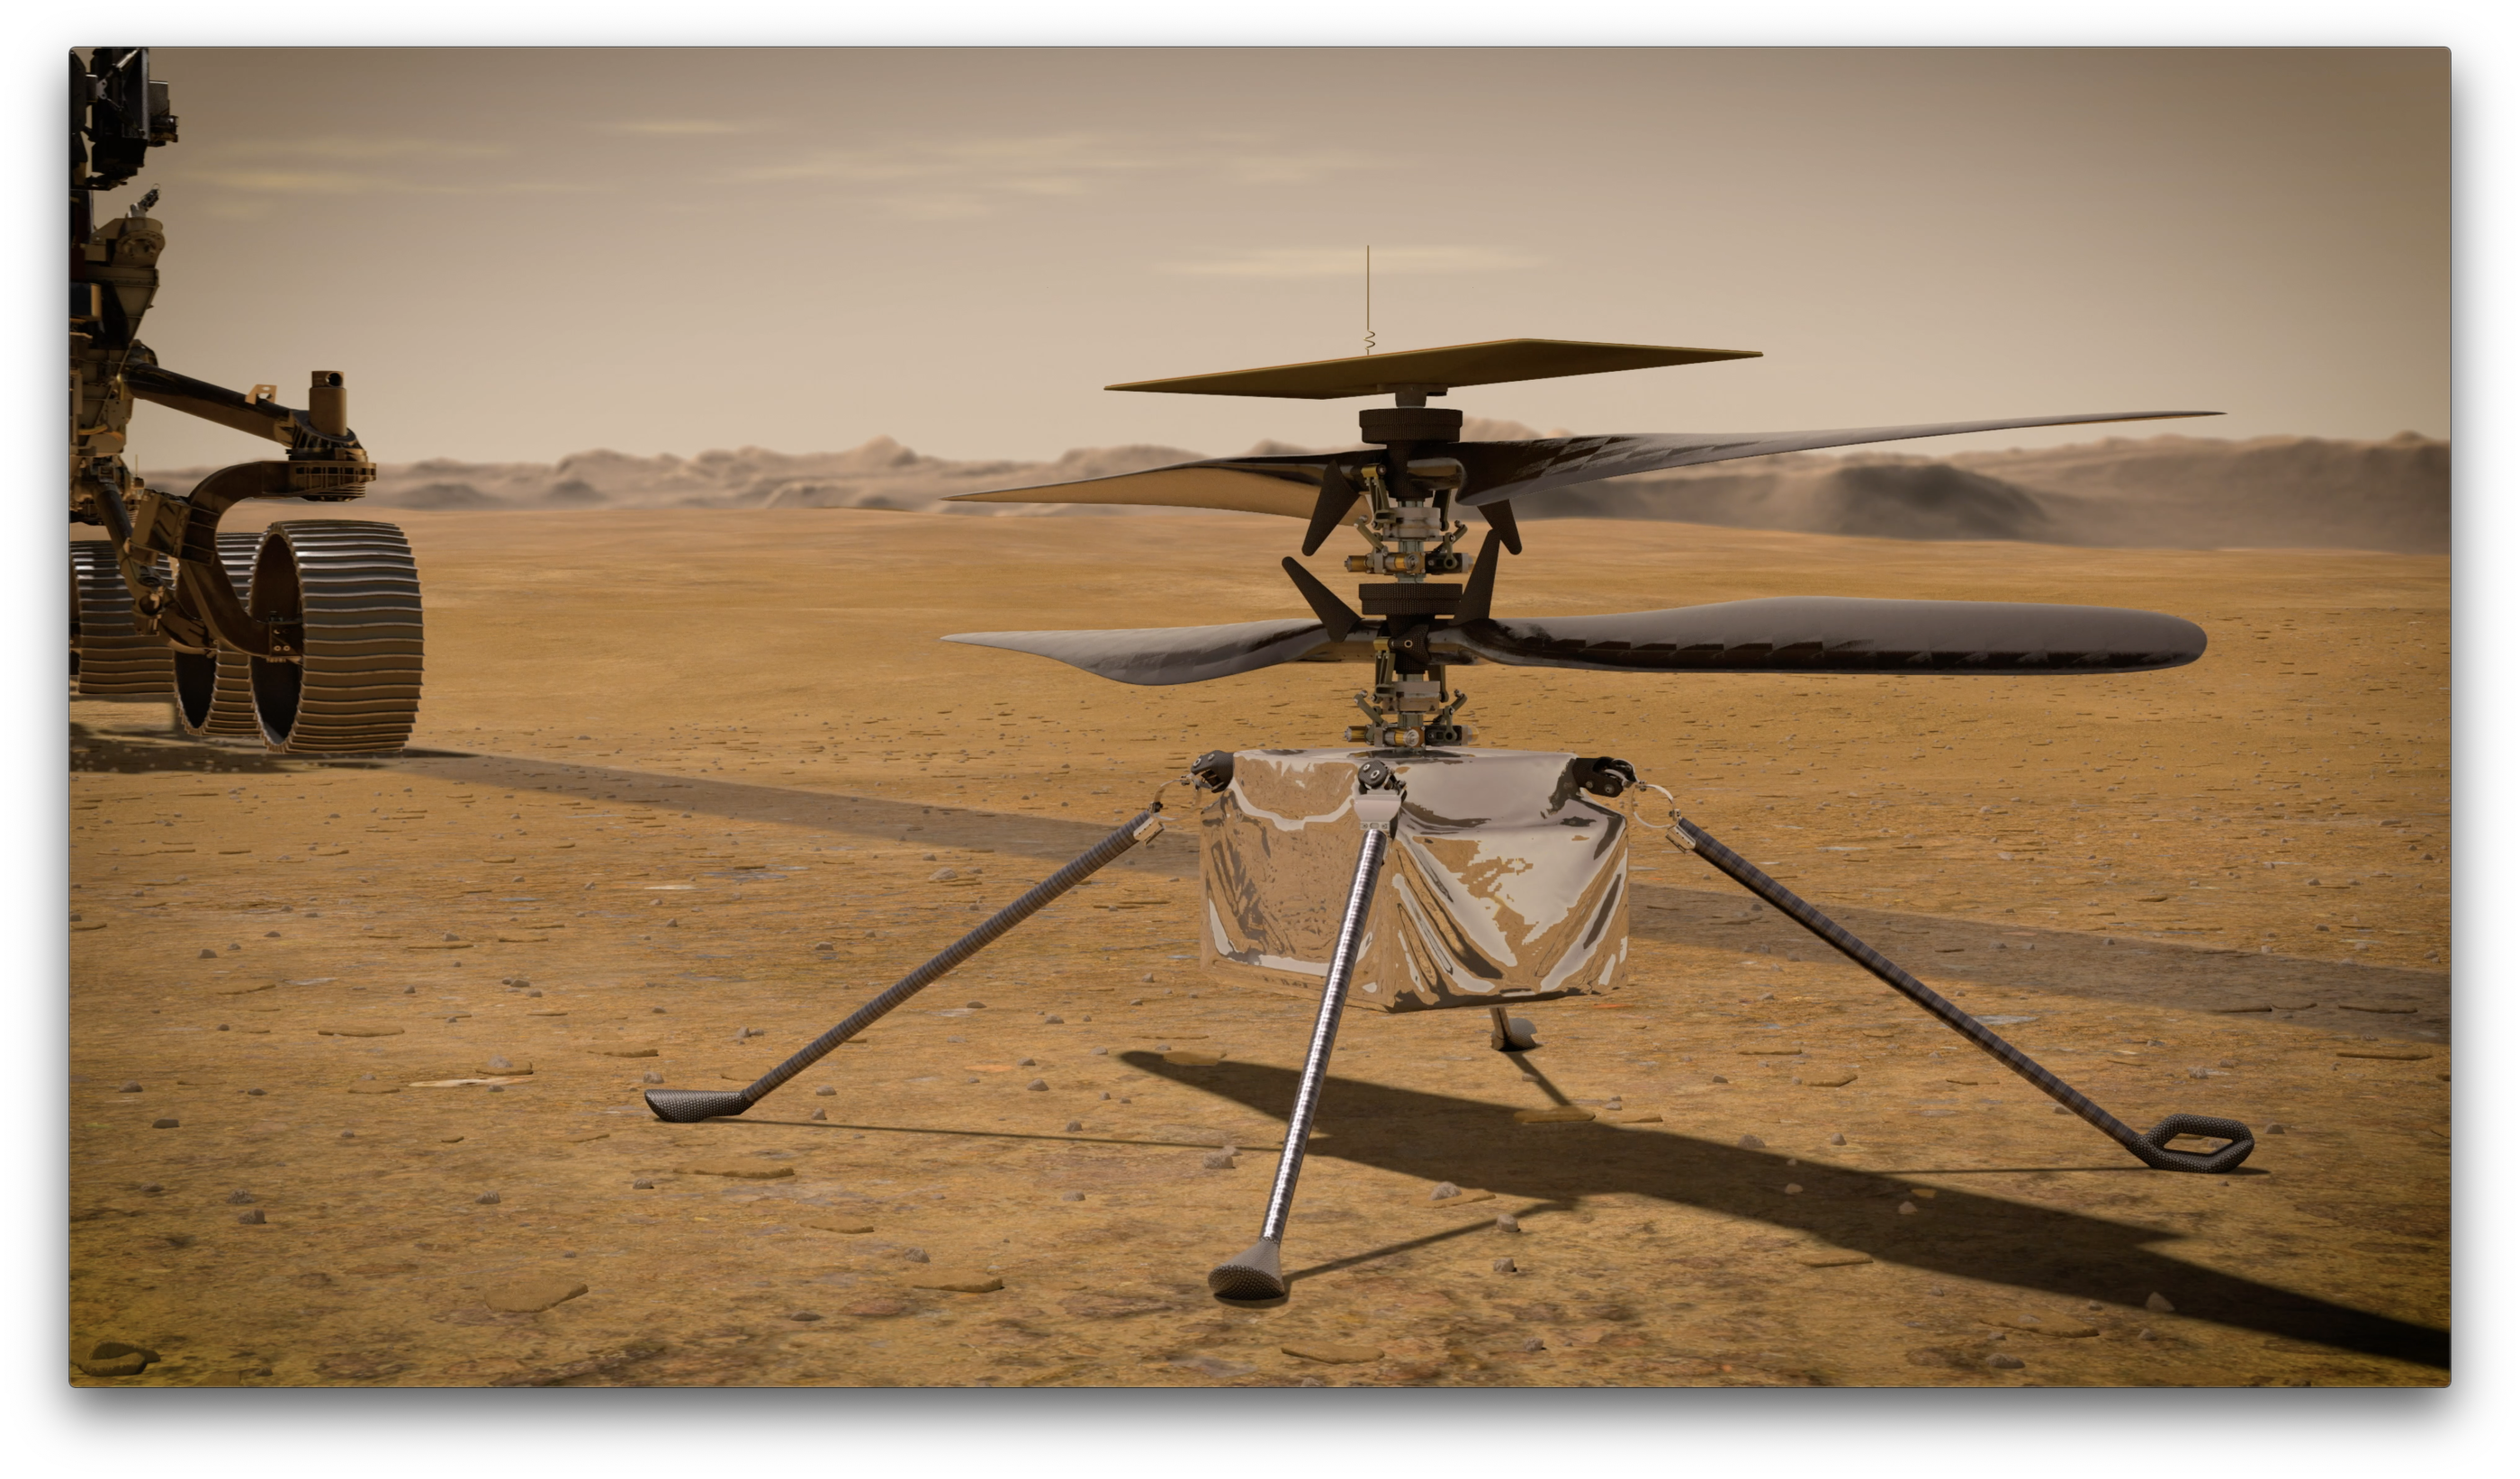 An artist's conceAn artist's concept shows NASA's Ingenuity Mars Helicopter standing on the Red Planet's surface. The aircraft will arrive on Mars on Feb. 18, 2021, and will become the first aircraft to attempt controlled flight on another planet. NASA Imagept shows NASA's Ingenuity Mars Helicopter standing on the Red Planet's surface. The aircraft will arrive on Mars on Feb. 18, 2021, and will become the first aircraft to attempt controlled flight on another planet. NASA Image